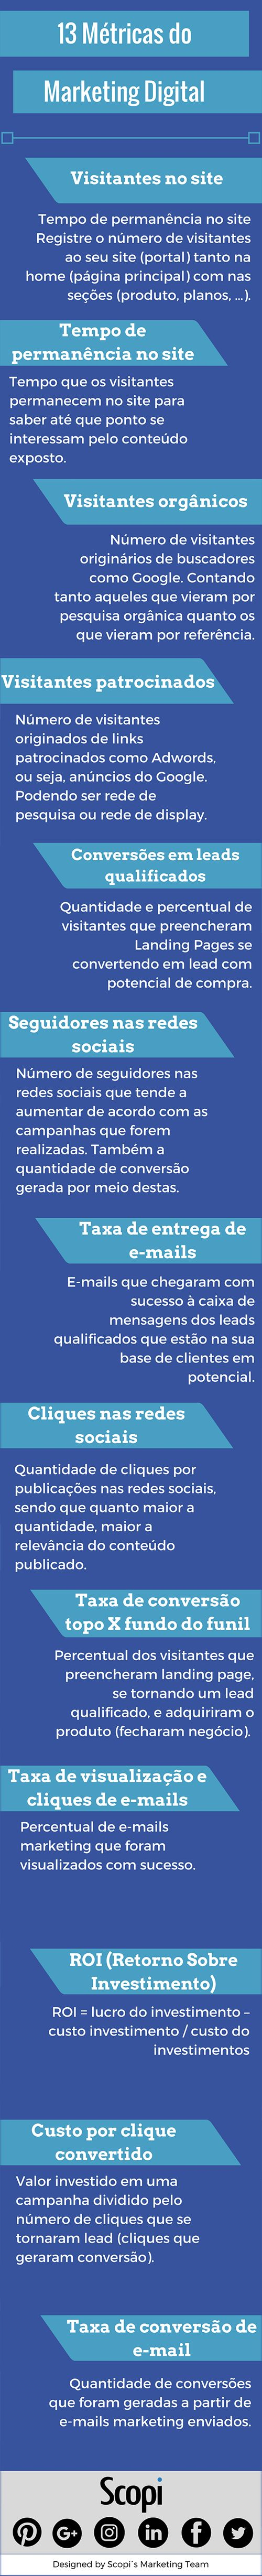 Métricas do #Markering Digital